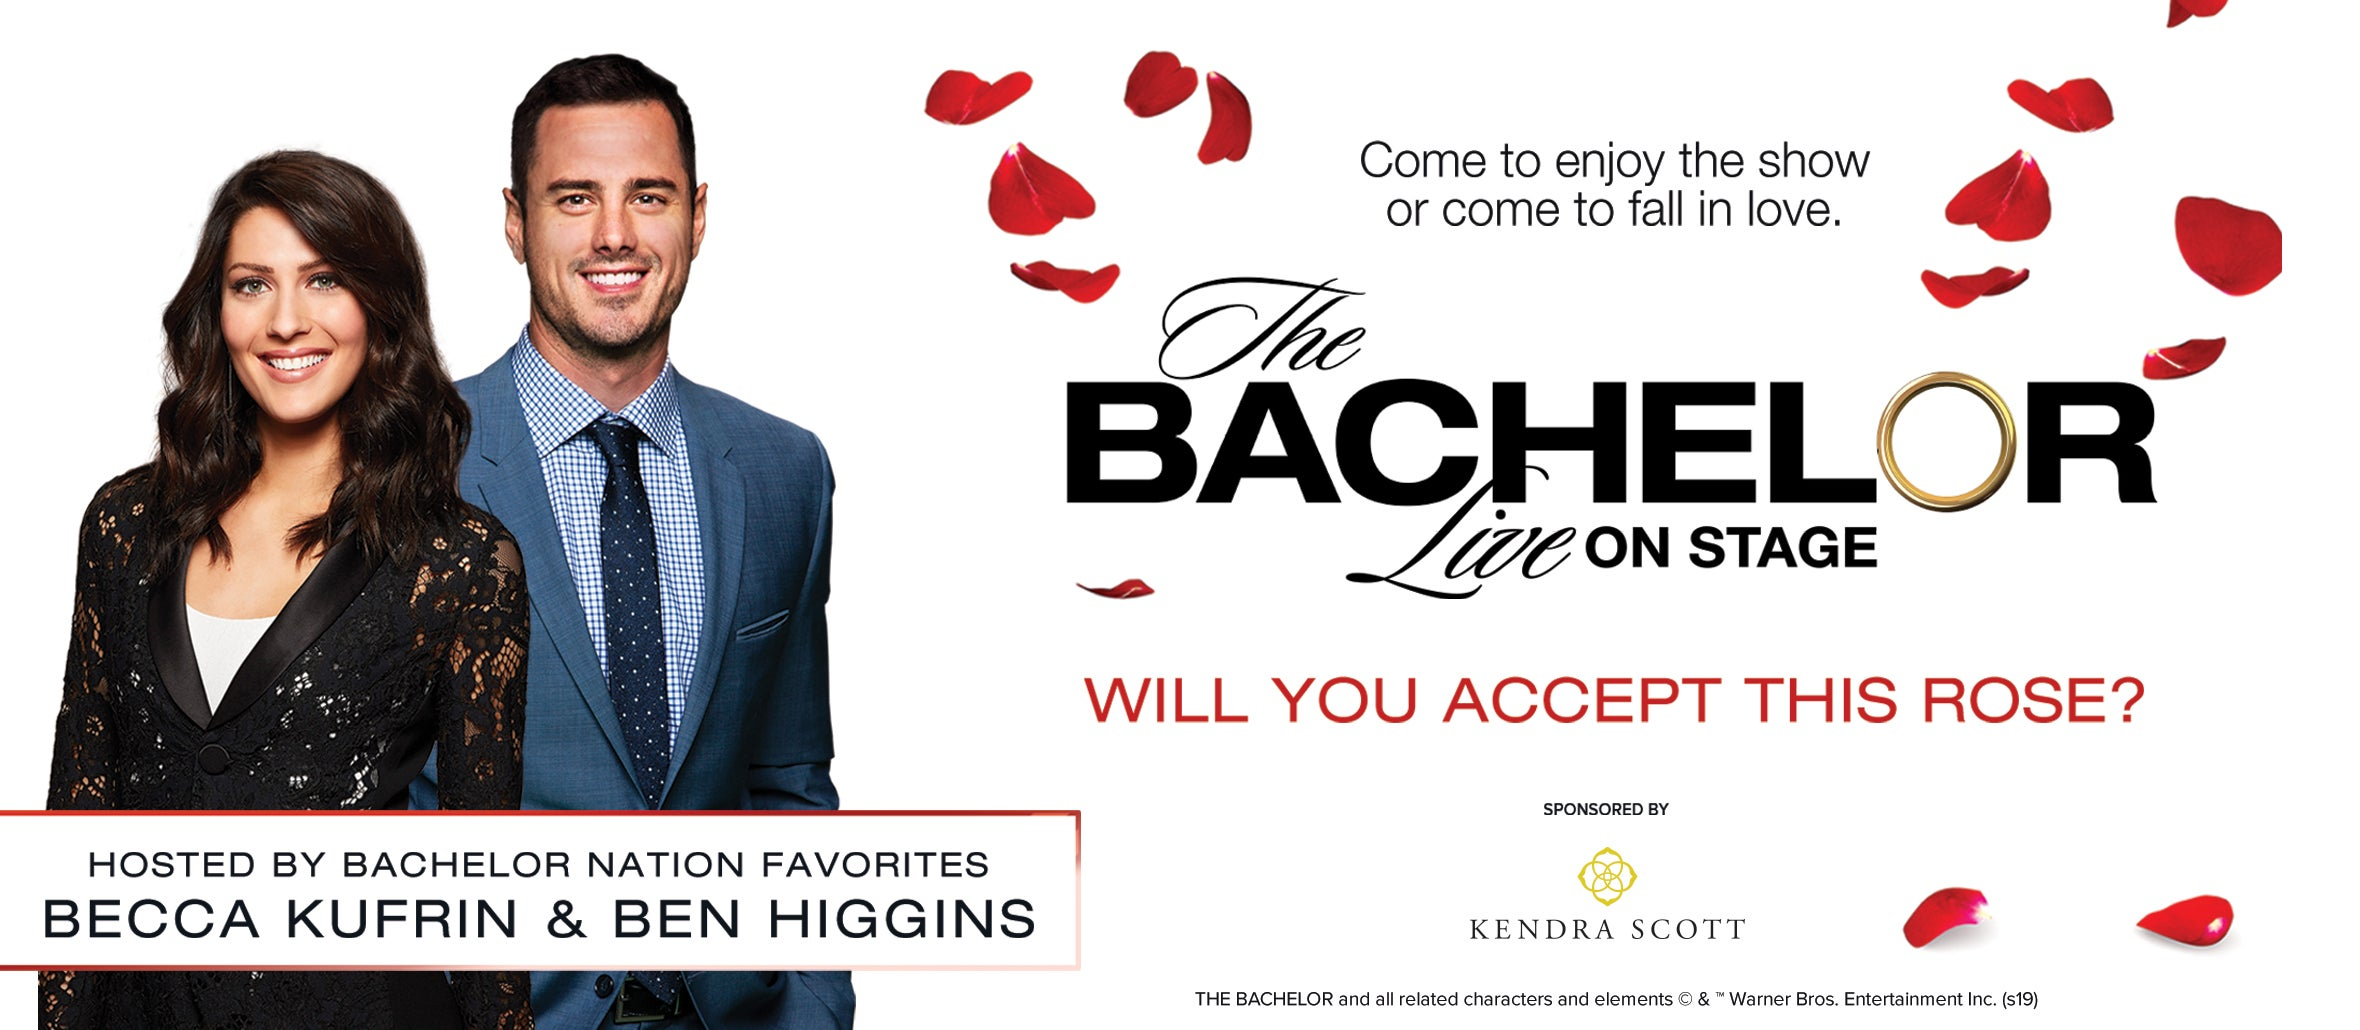 The Bachelor Live on Stage has been postponed